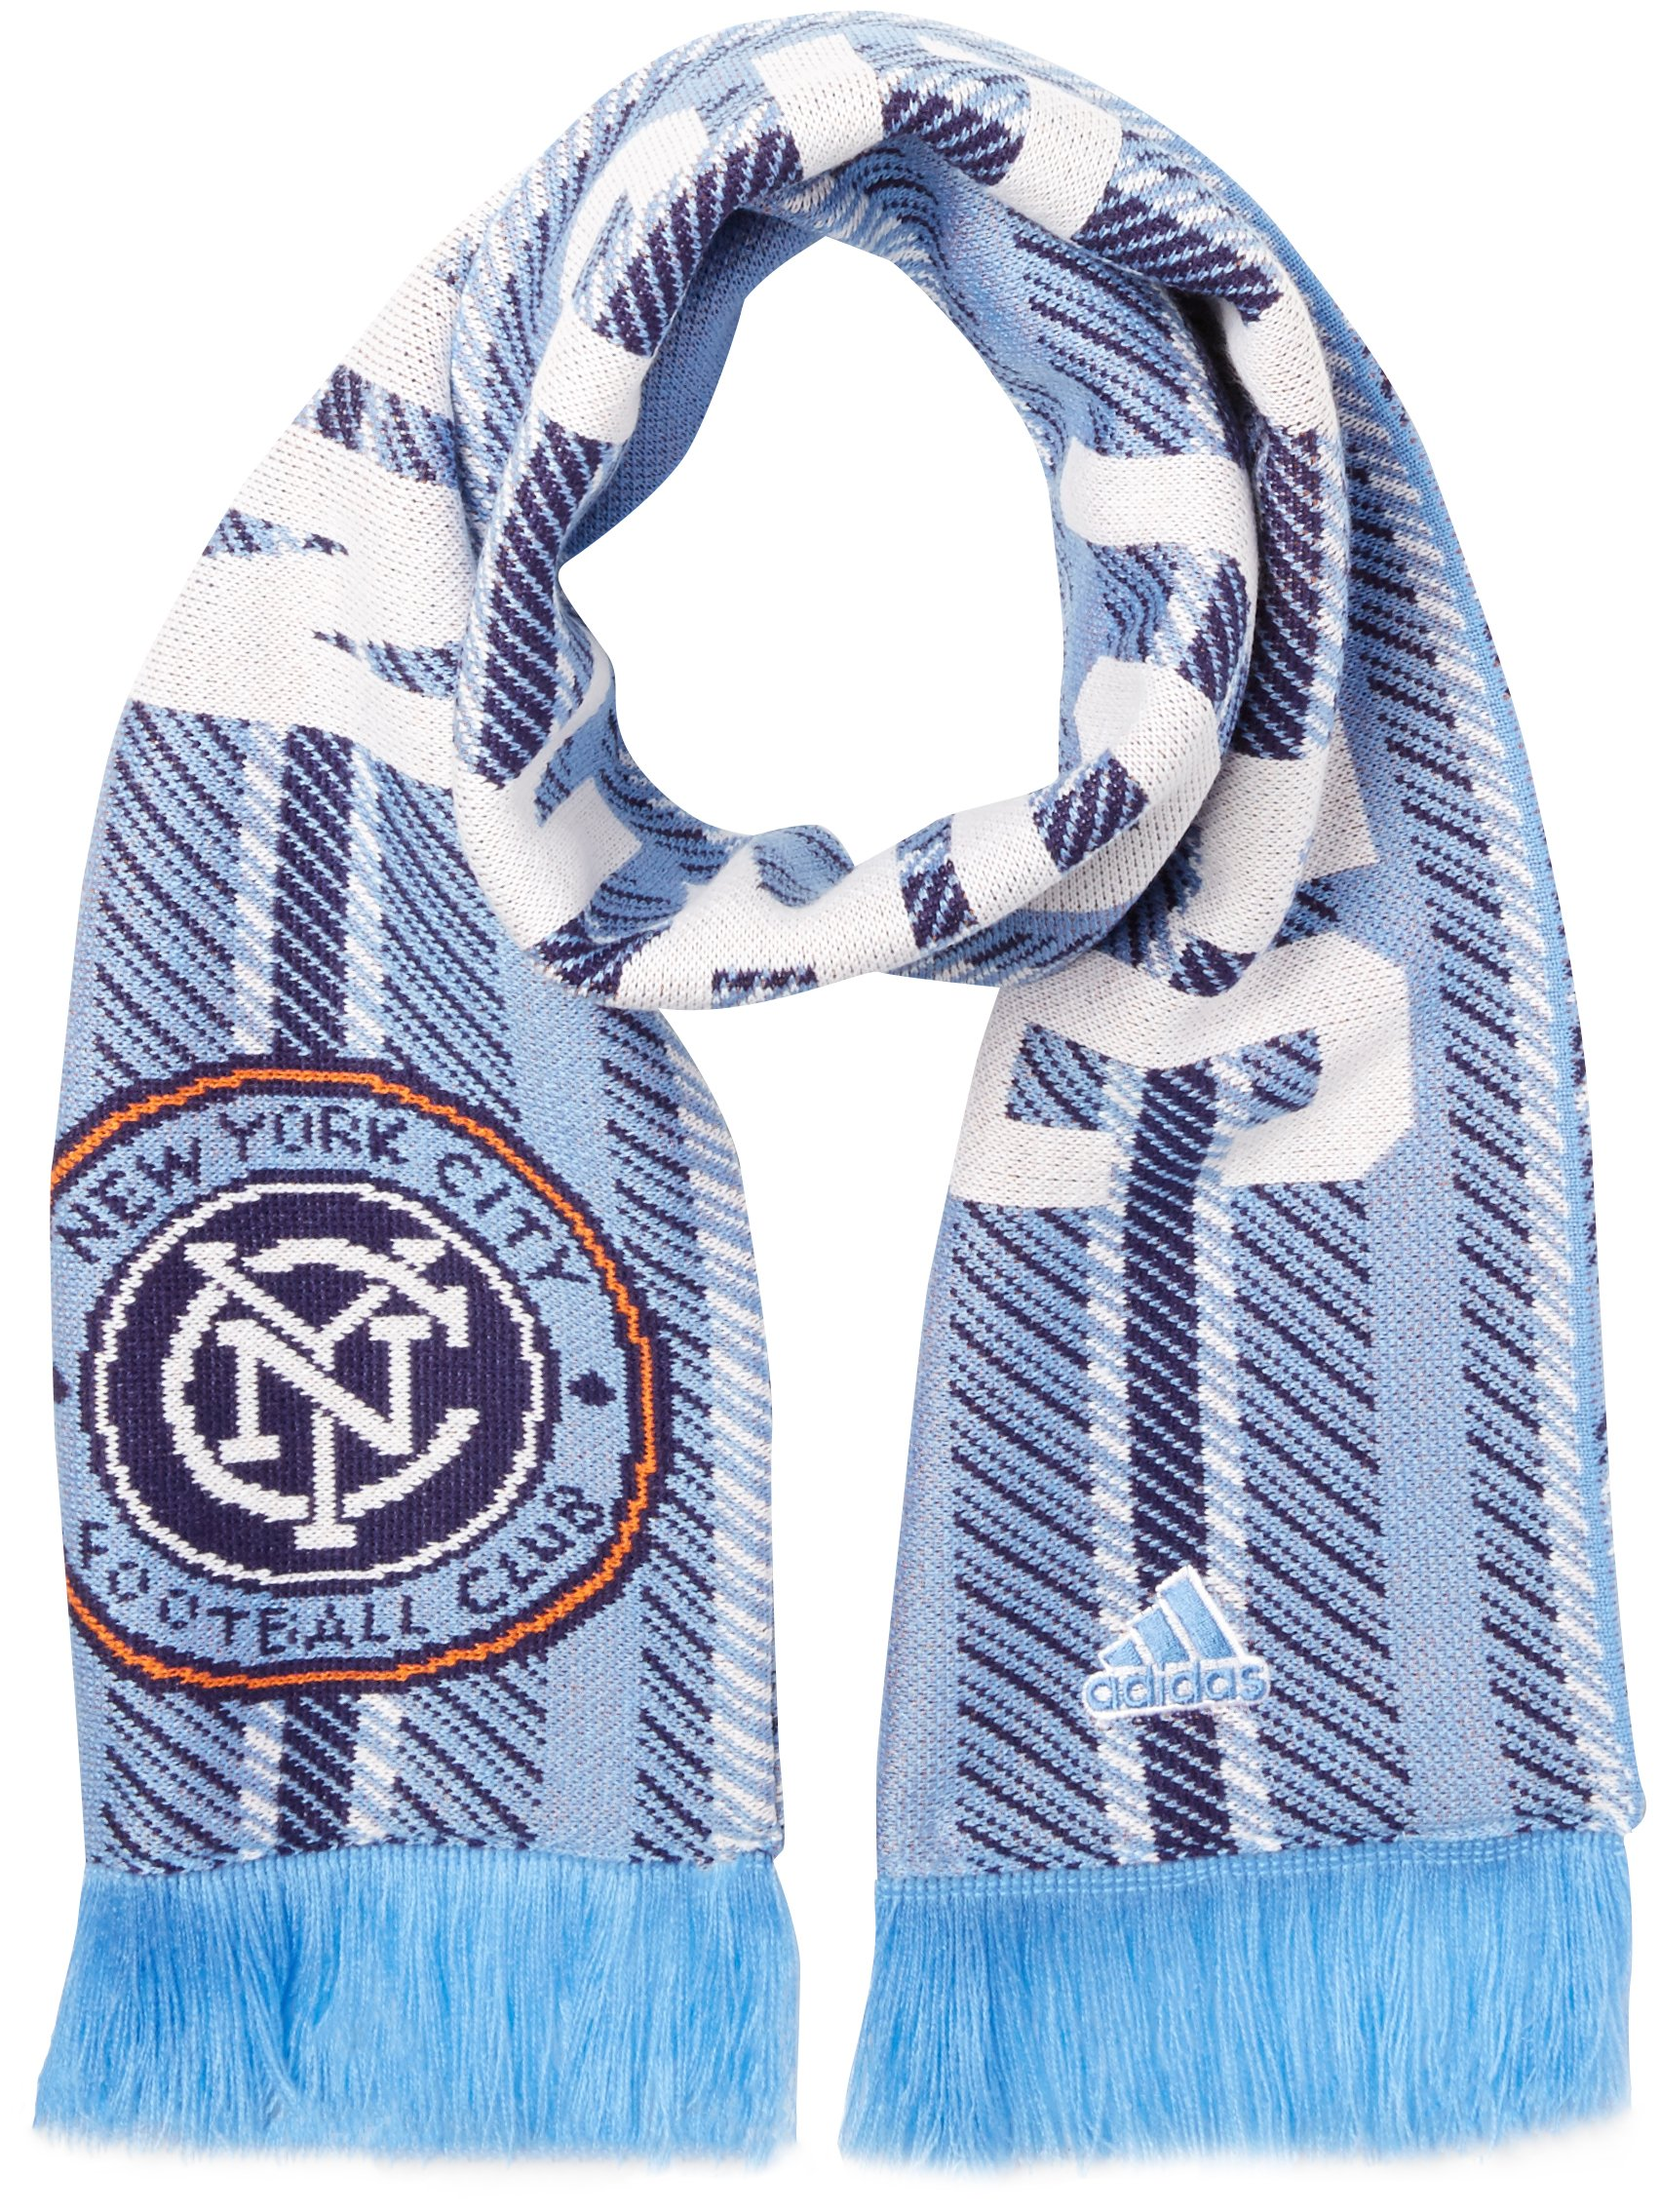 adidas MLS New York City FC Jacquard Scarf with Block Name, One Size, Blue